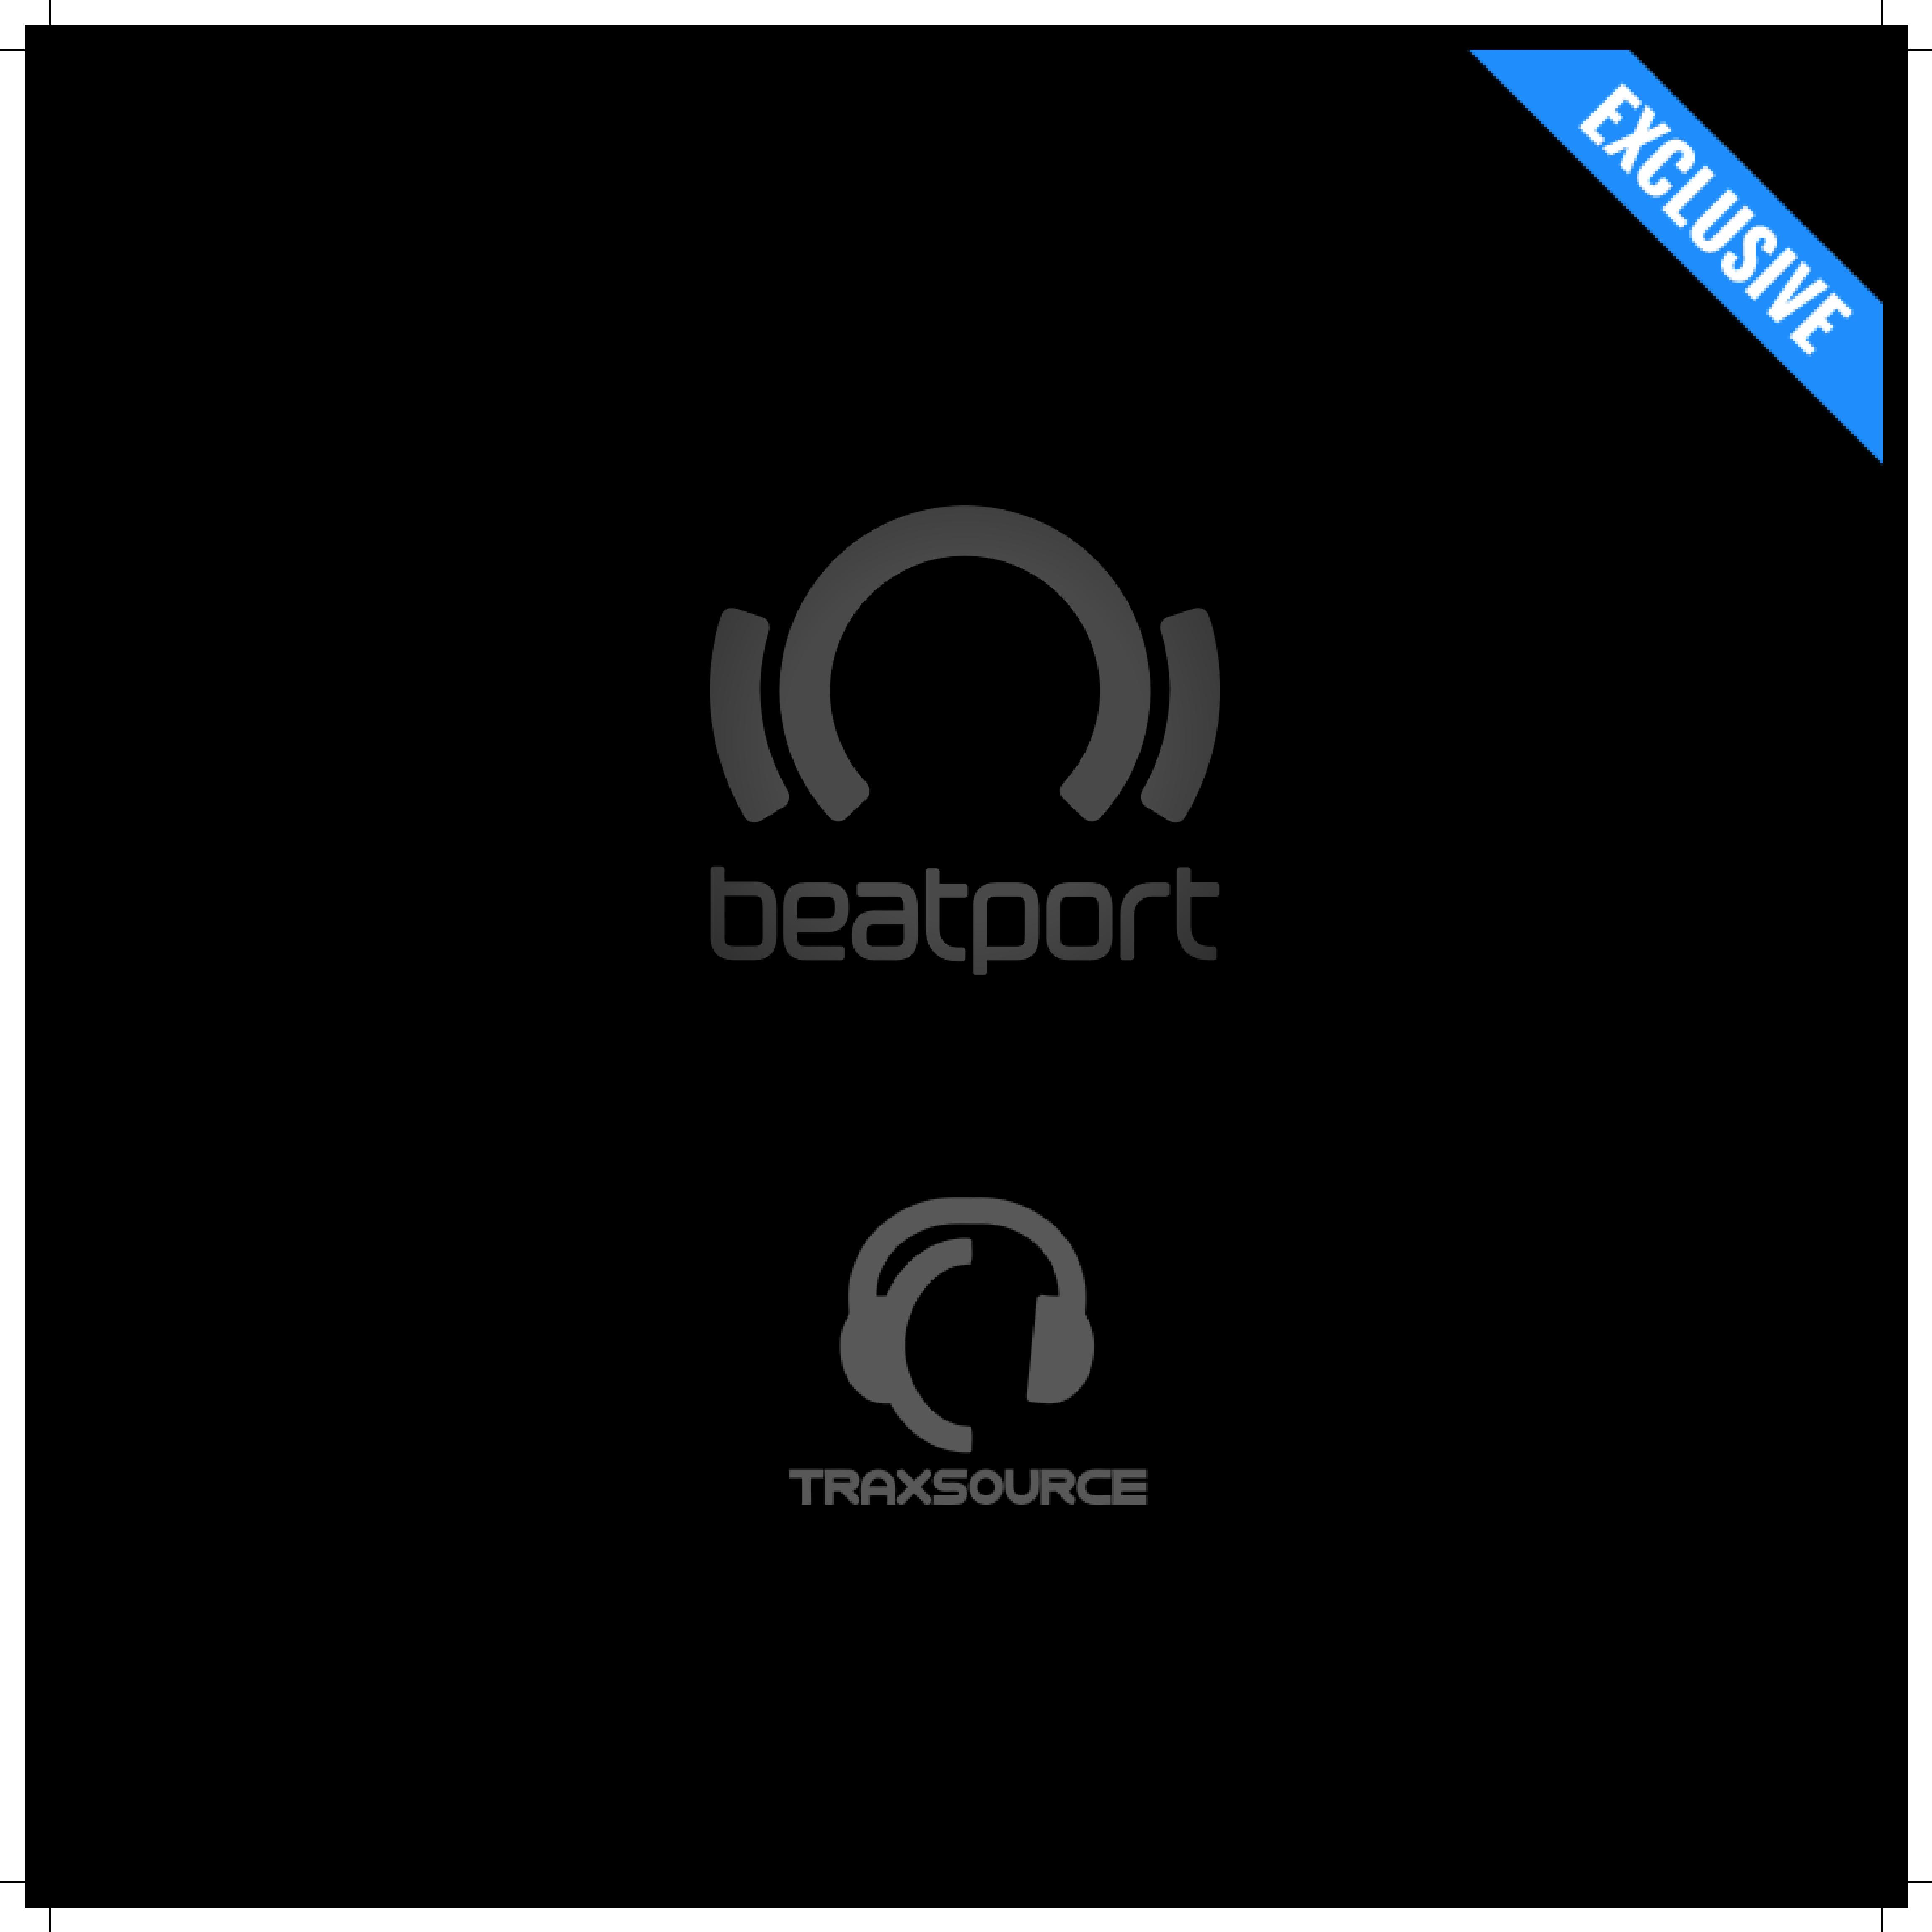 Beatport & traxsource download tracklist 20-11 « electrobuzz.